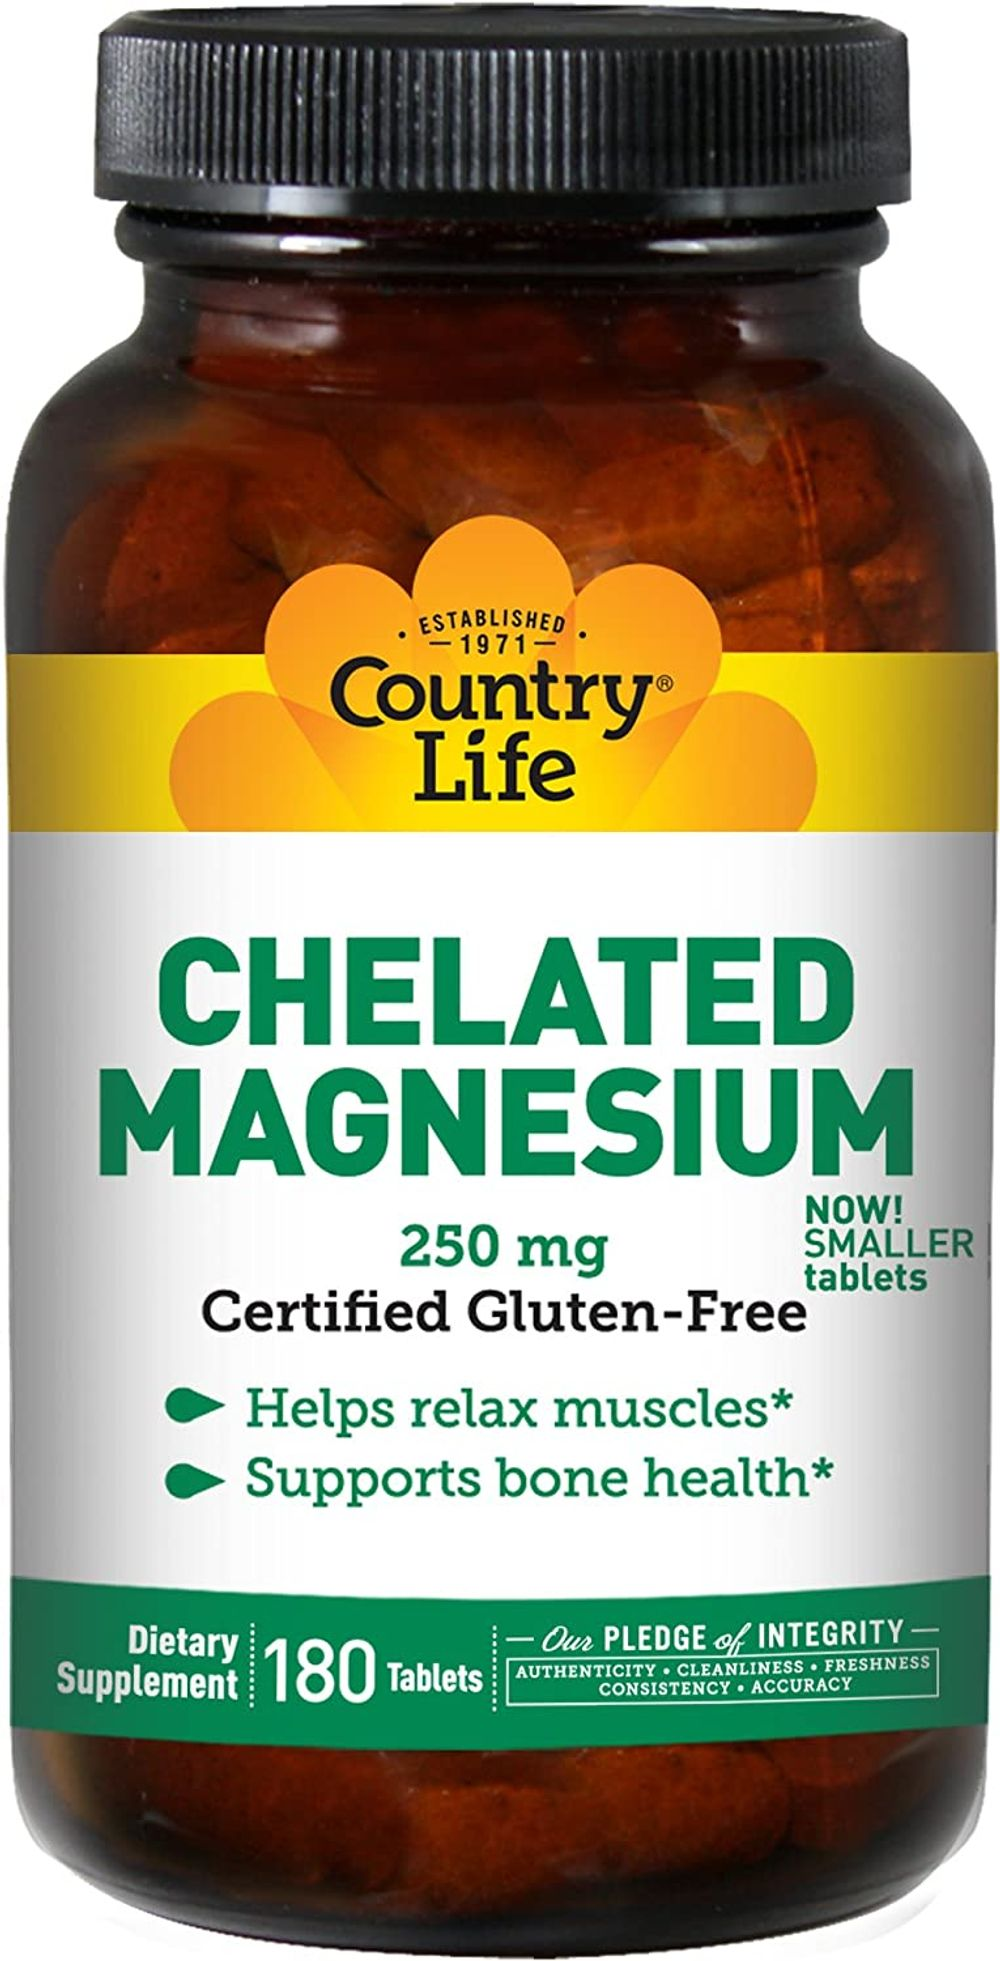 Country Life - Chelated Magnesium, 250 mg, 180 Tablets